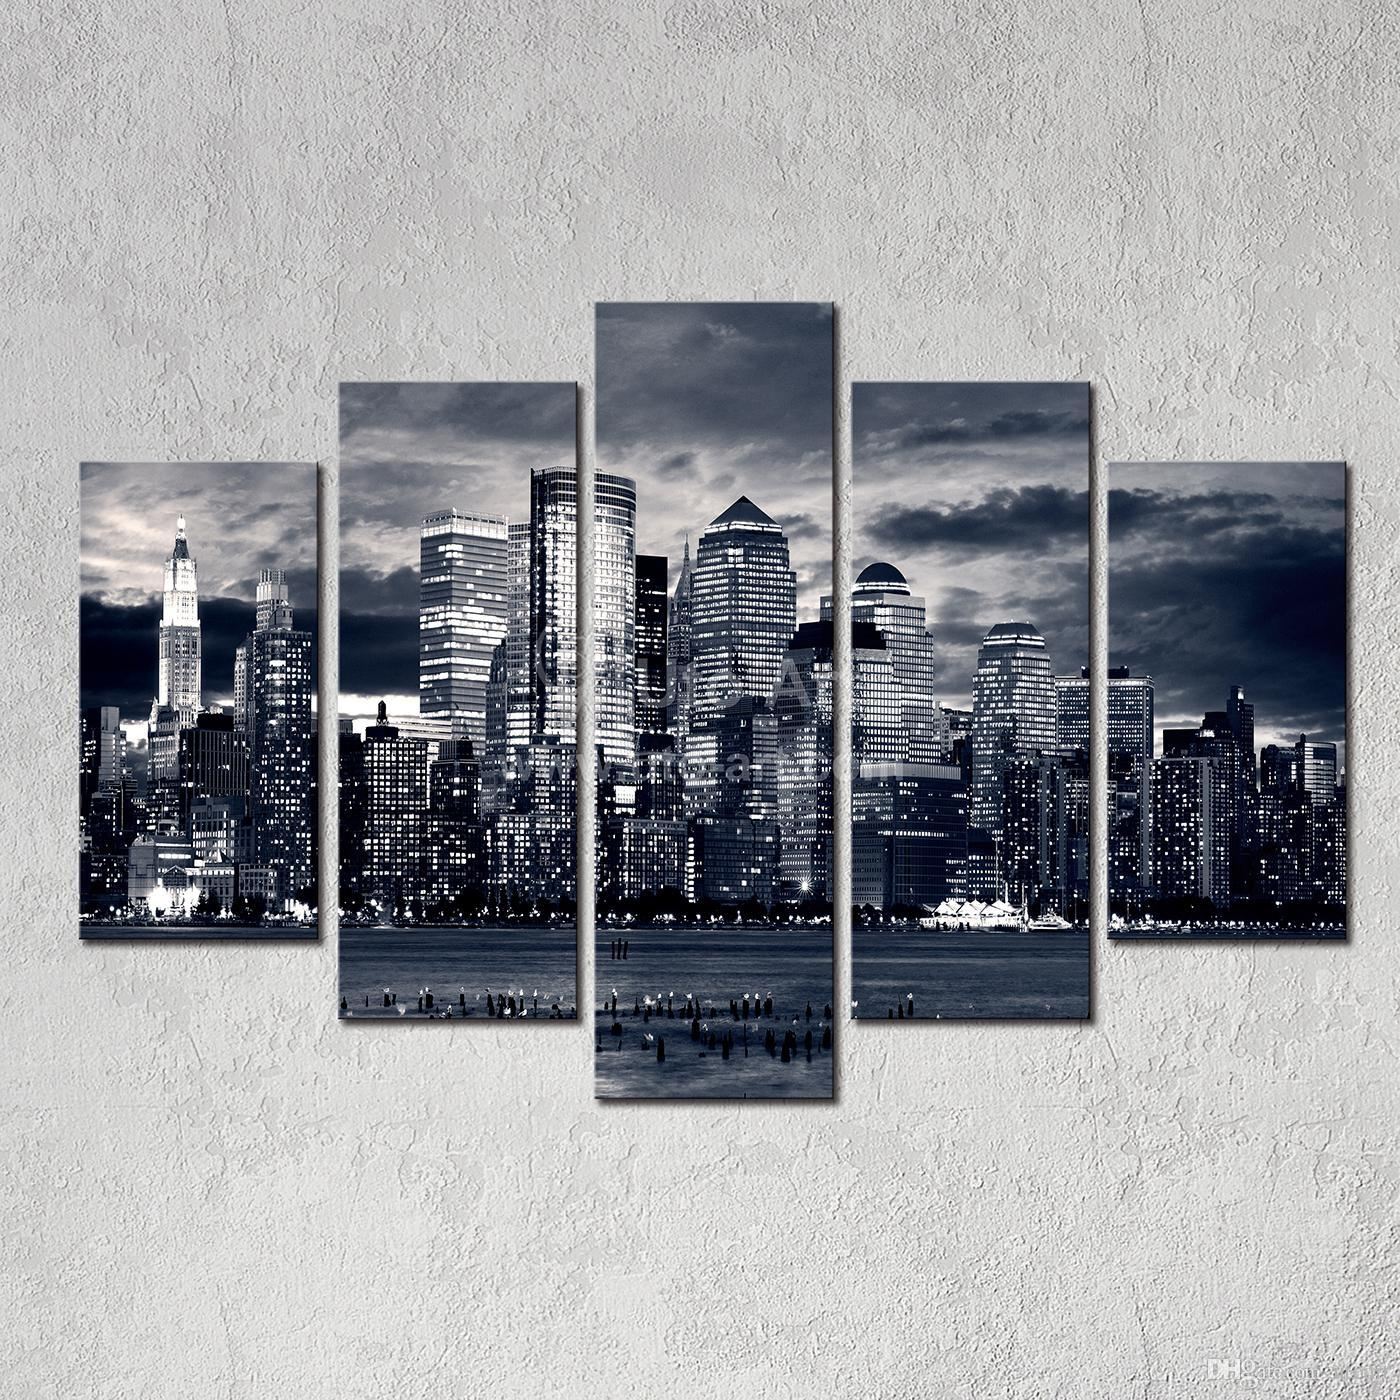 2017 Modern Home Decor New York City Painting Black White Digital Inside New York City Canvas Wall Art (View 3 of 20)